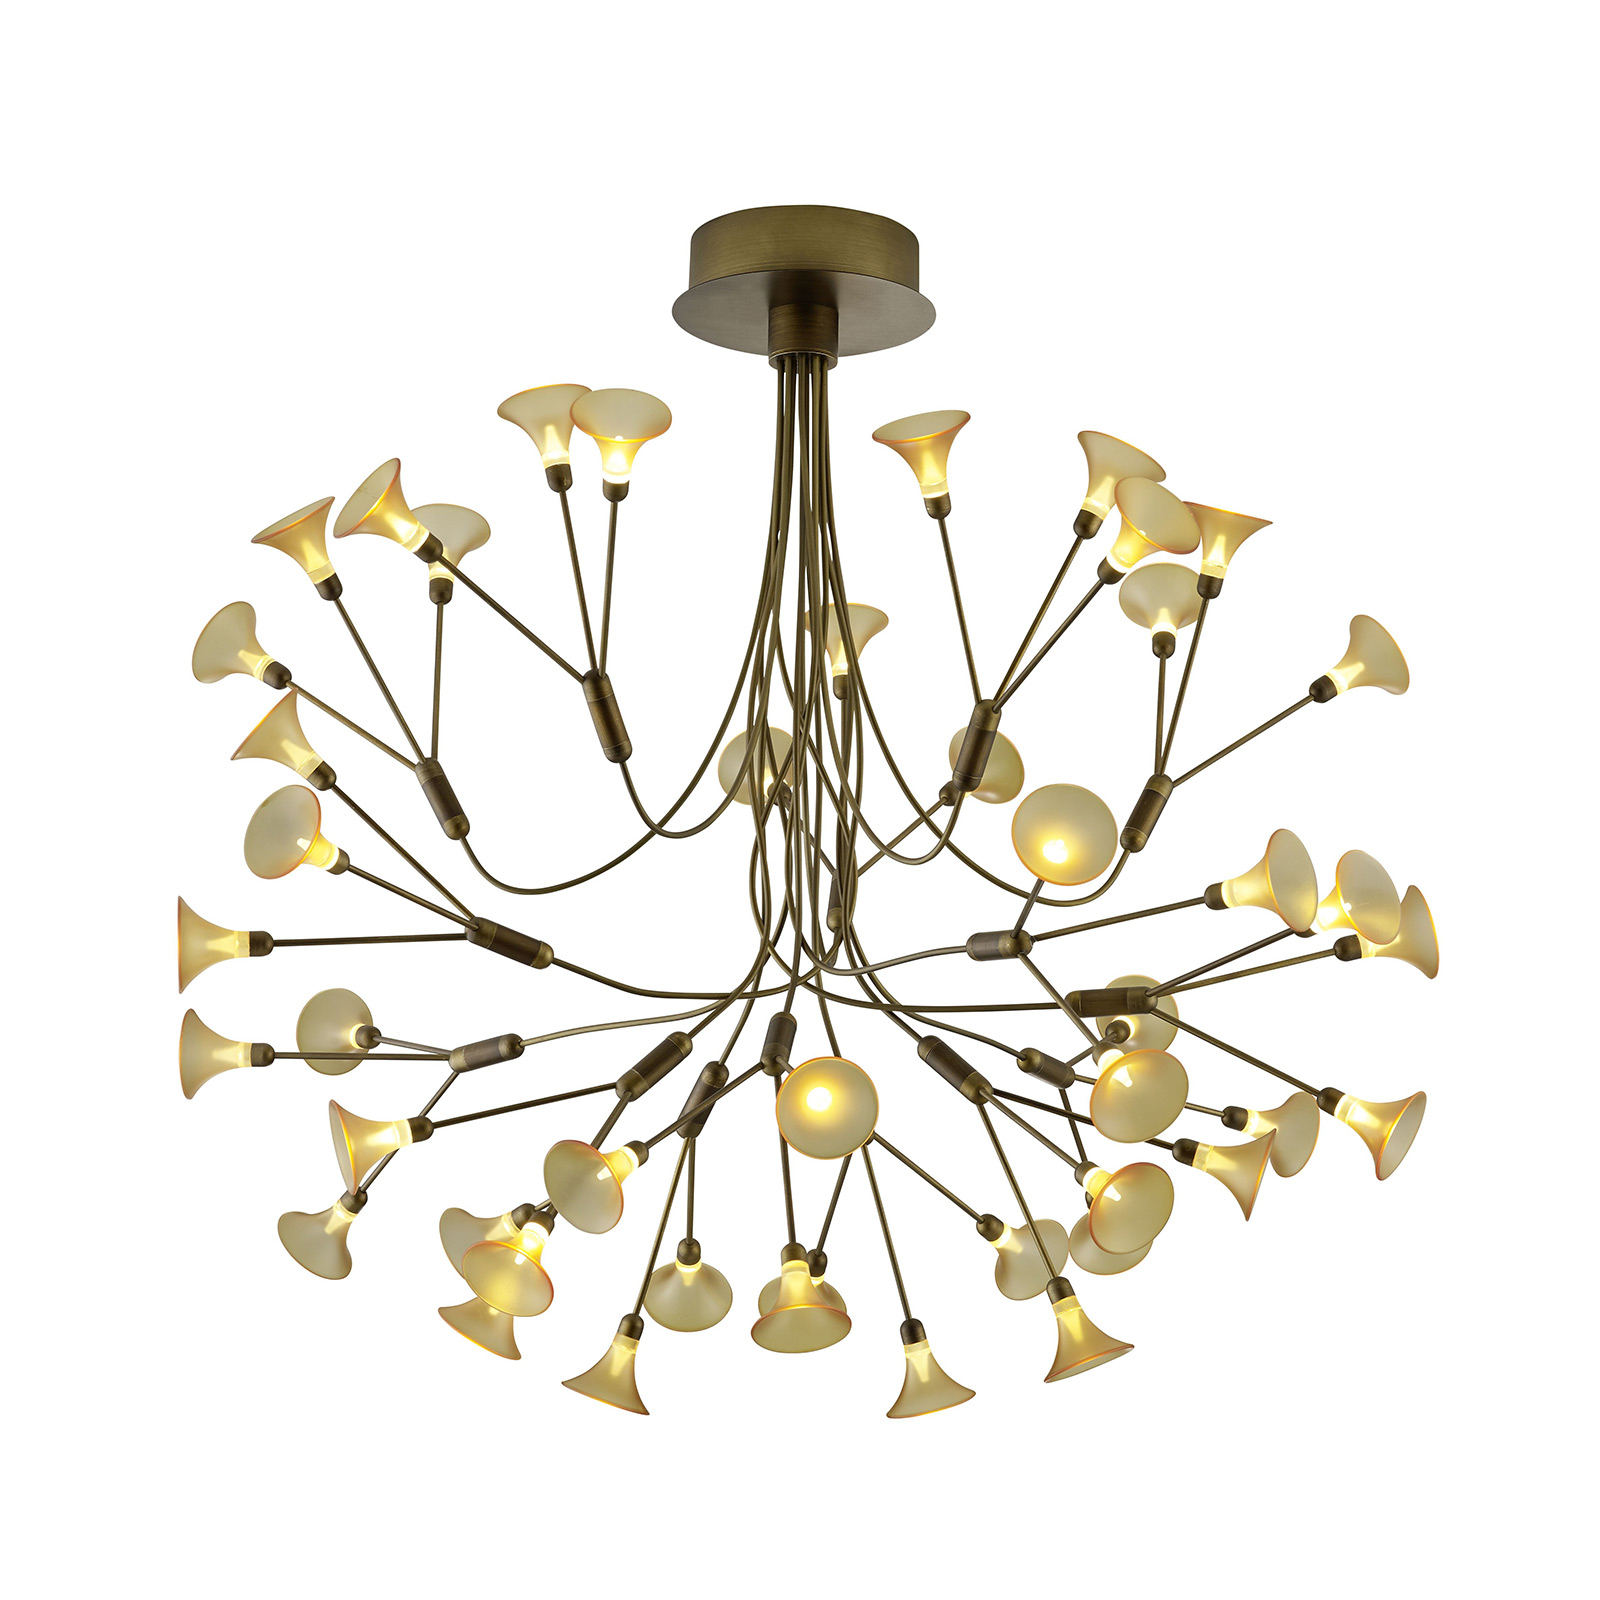 B-Leuchten Fleur suspension LED, laiton ancien